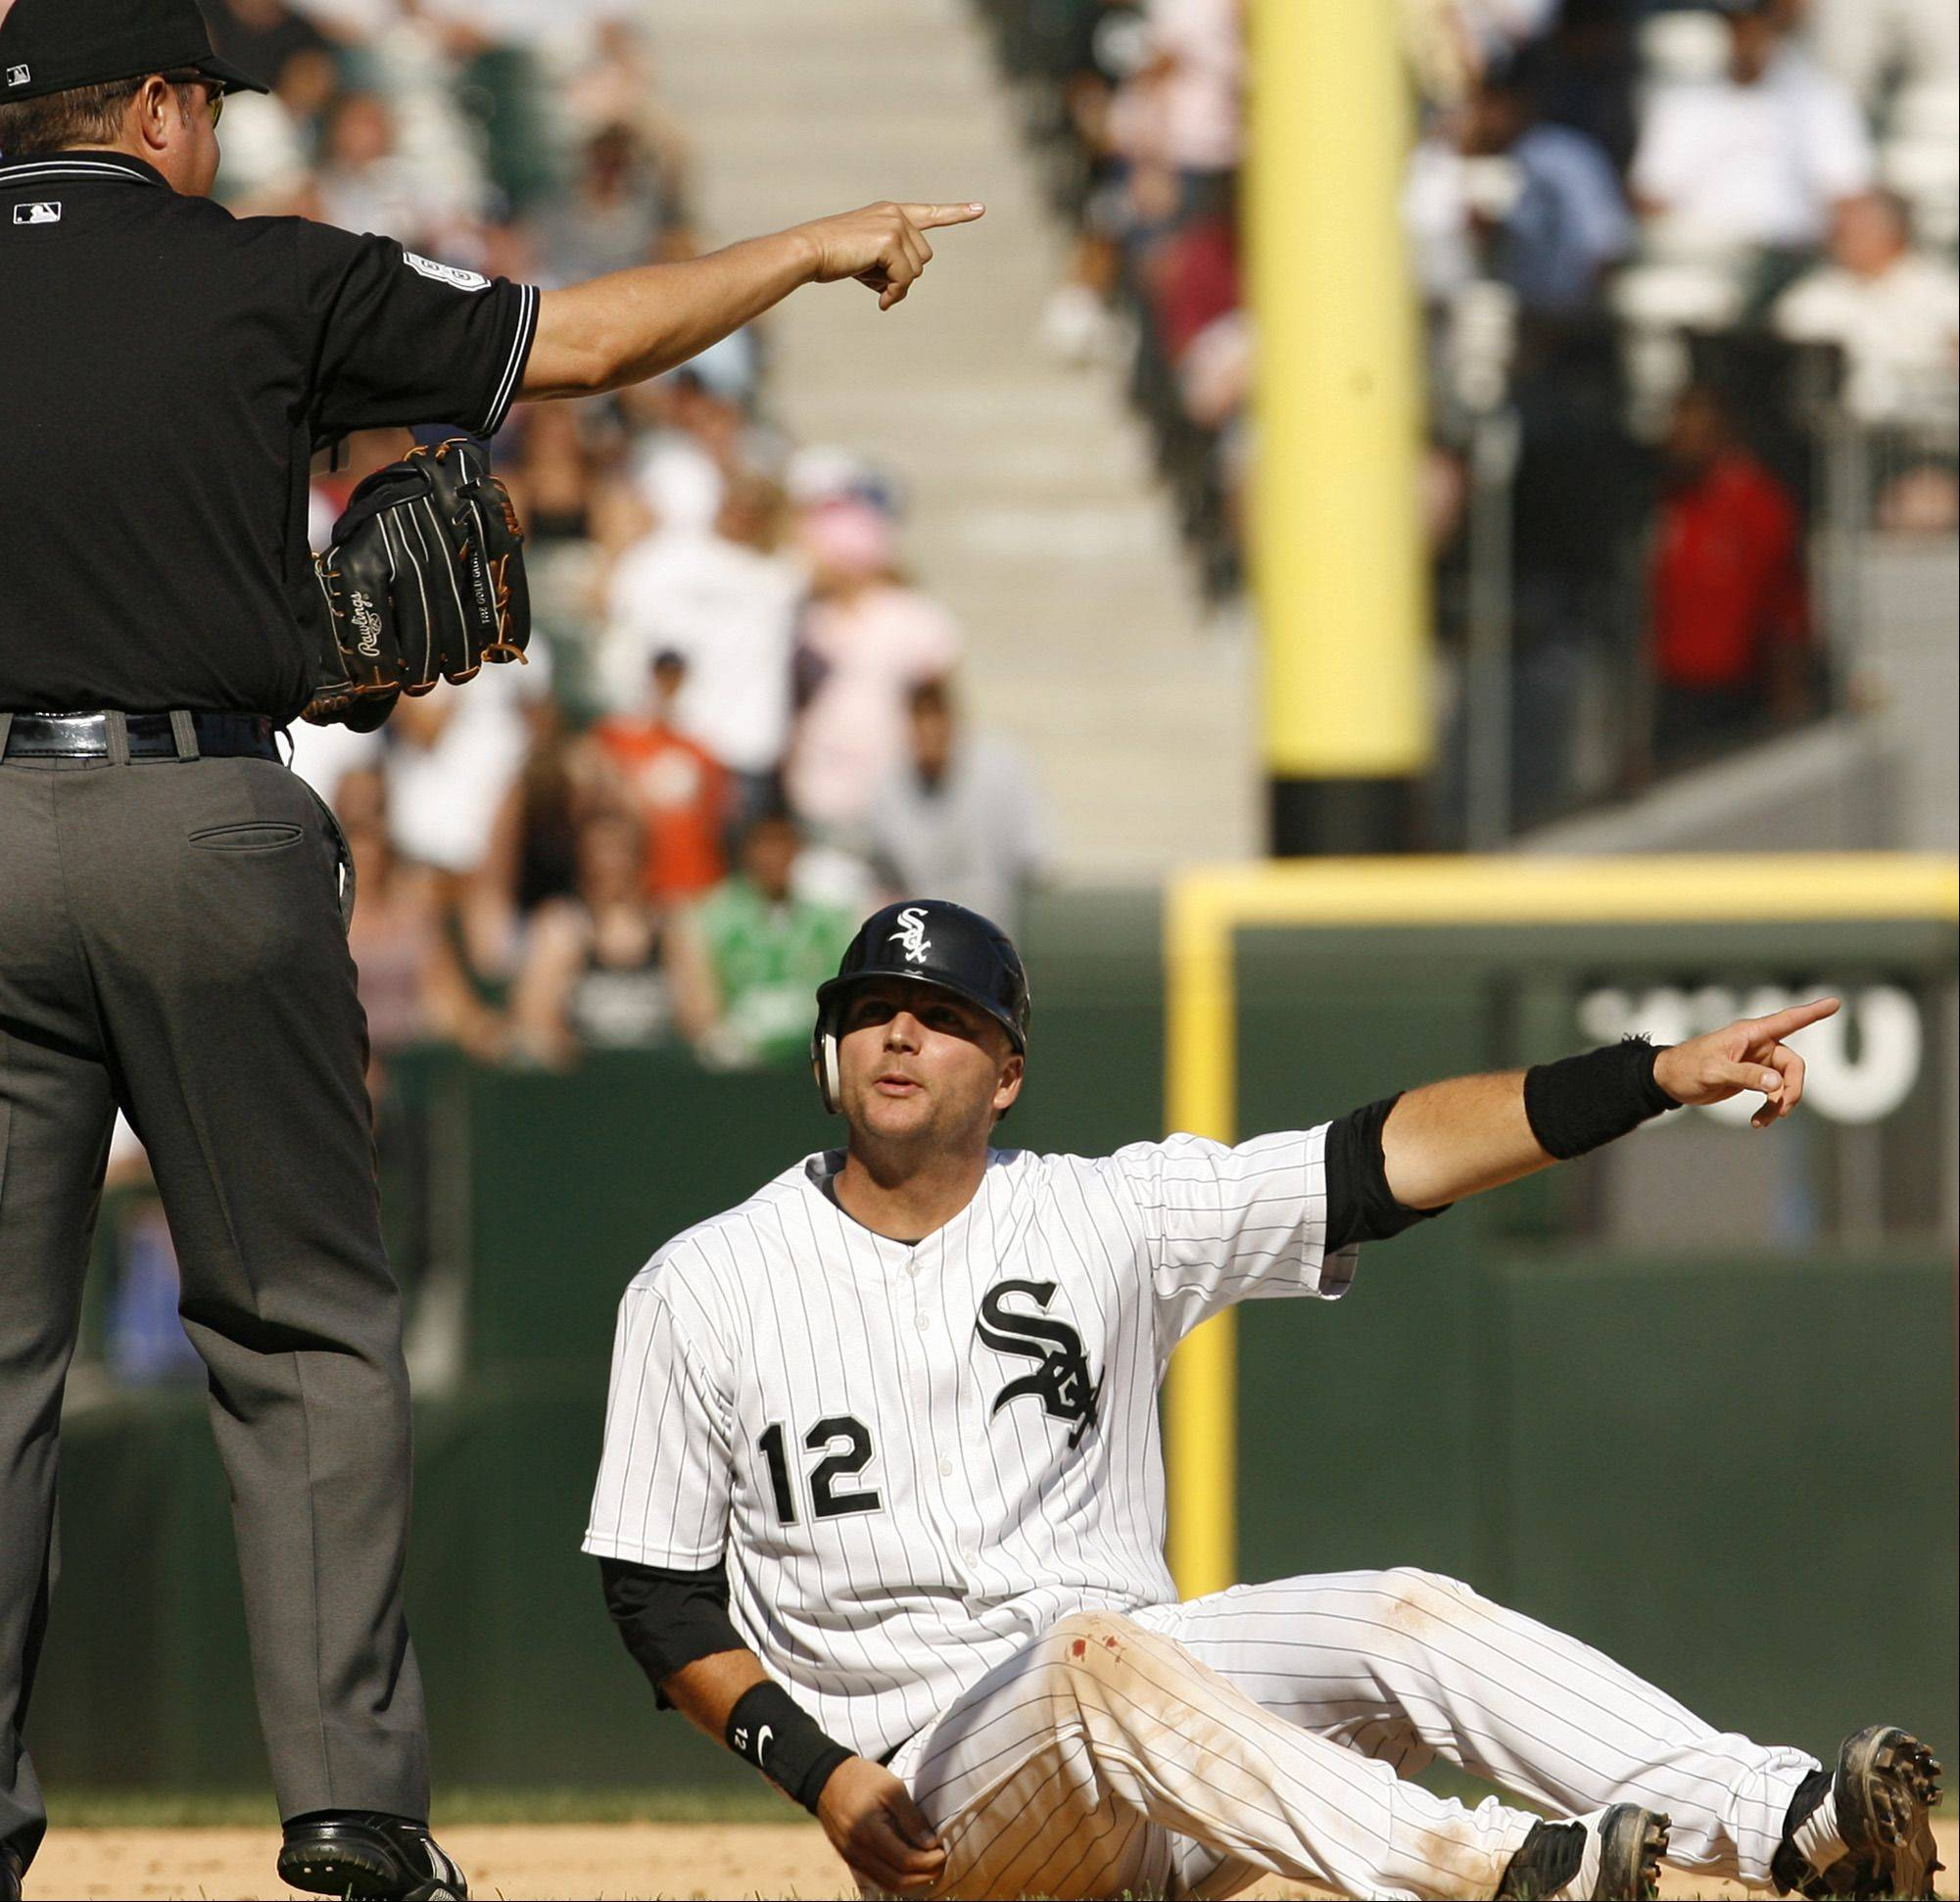 White Sox catcher A.J. Pierzynski, right, talks to second base umpire Doug Eddings about interference by Tampa Bay Rays third baseman Willy Aybar during the 10th inning of a baseball game Sunday, Aug. 24, 2008, in Chicago.